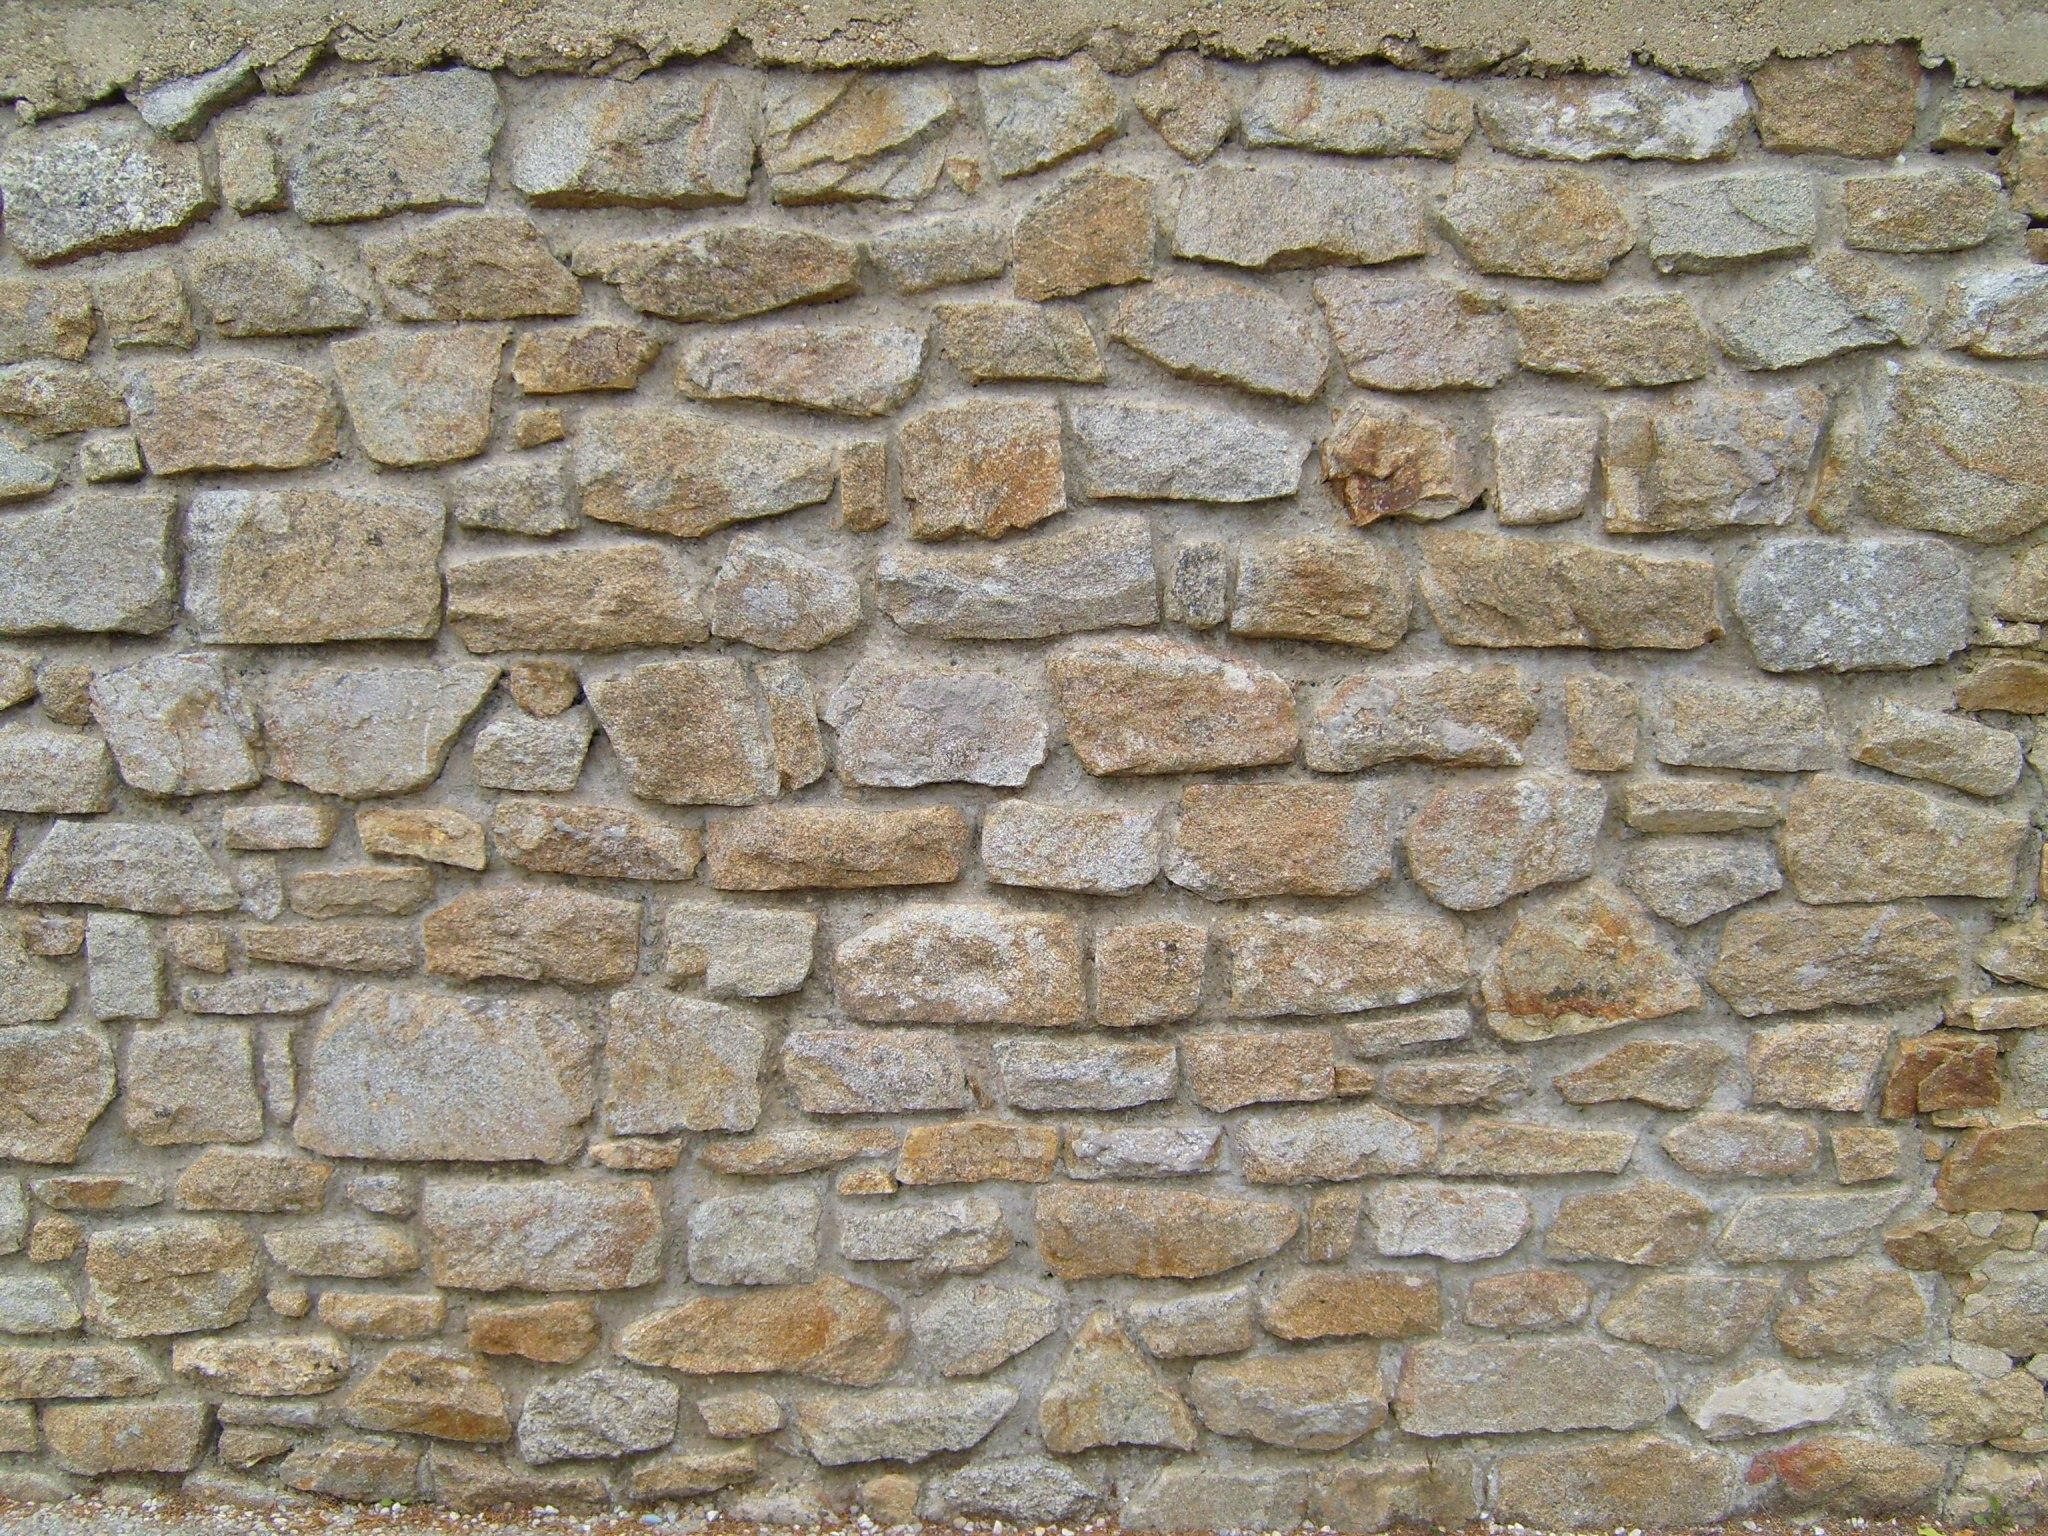 File:Stone wall pattern.jpg - Wikimedia Commons